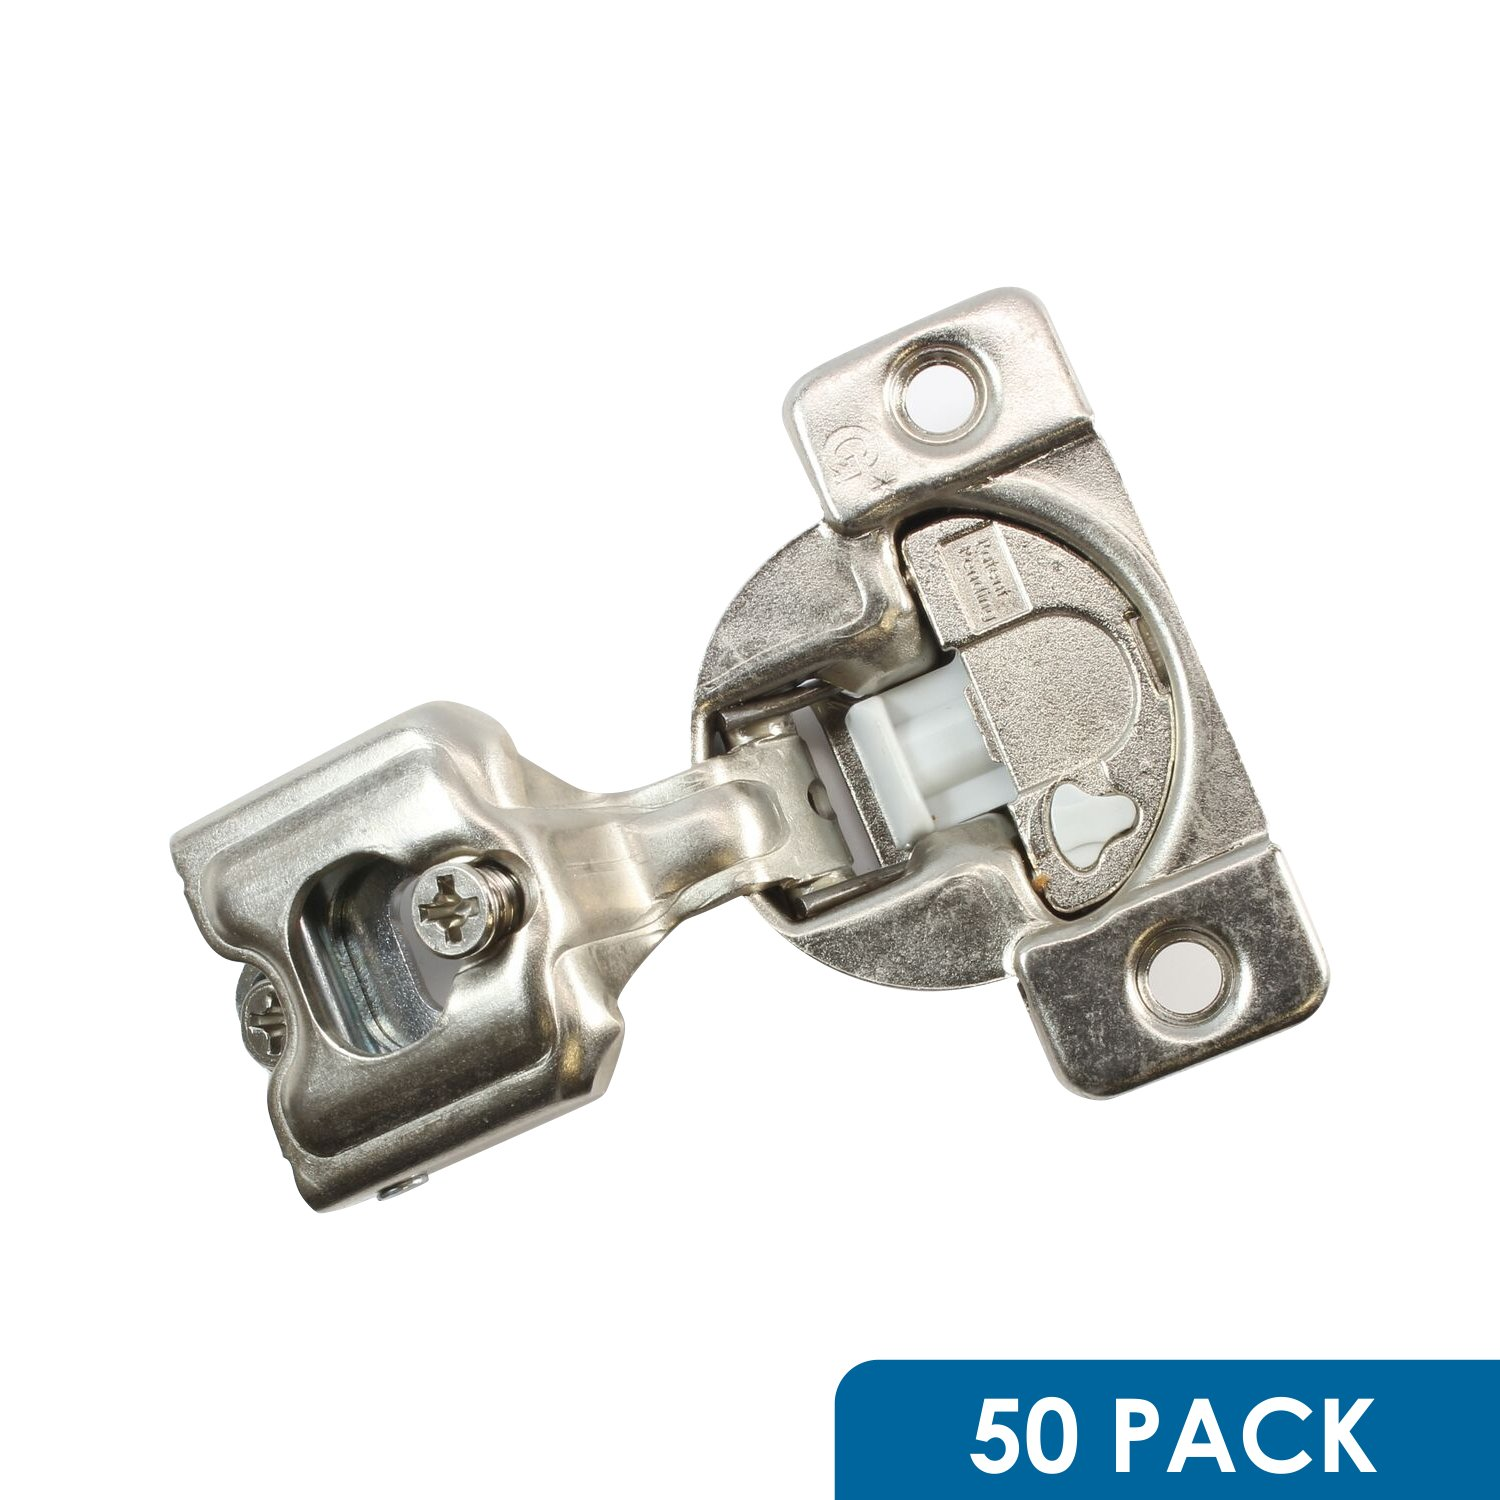 50 Pack Rok Hardware Grass TEC 864 108 Degree 1'' Overlay 3 Level Soft Close Screw On Compact Cabinet Hinge 04441A-15 3-Way Adjustment 45mm Boring Pattern